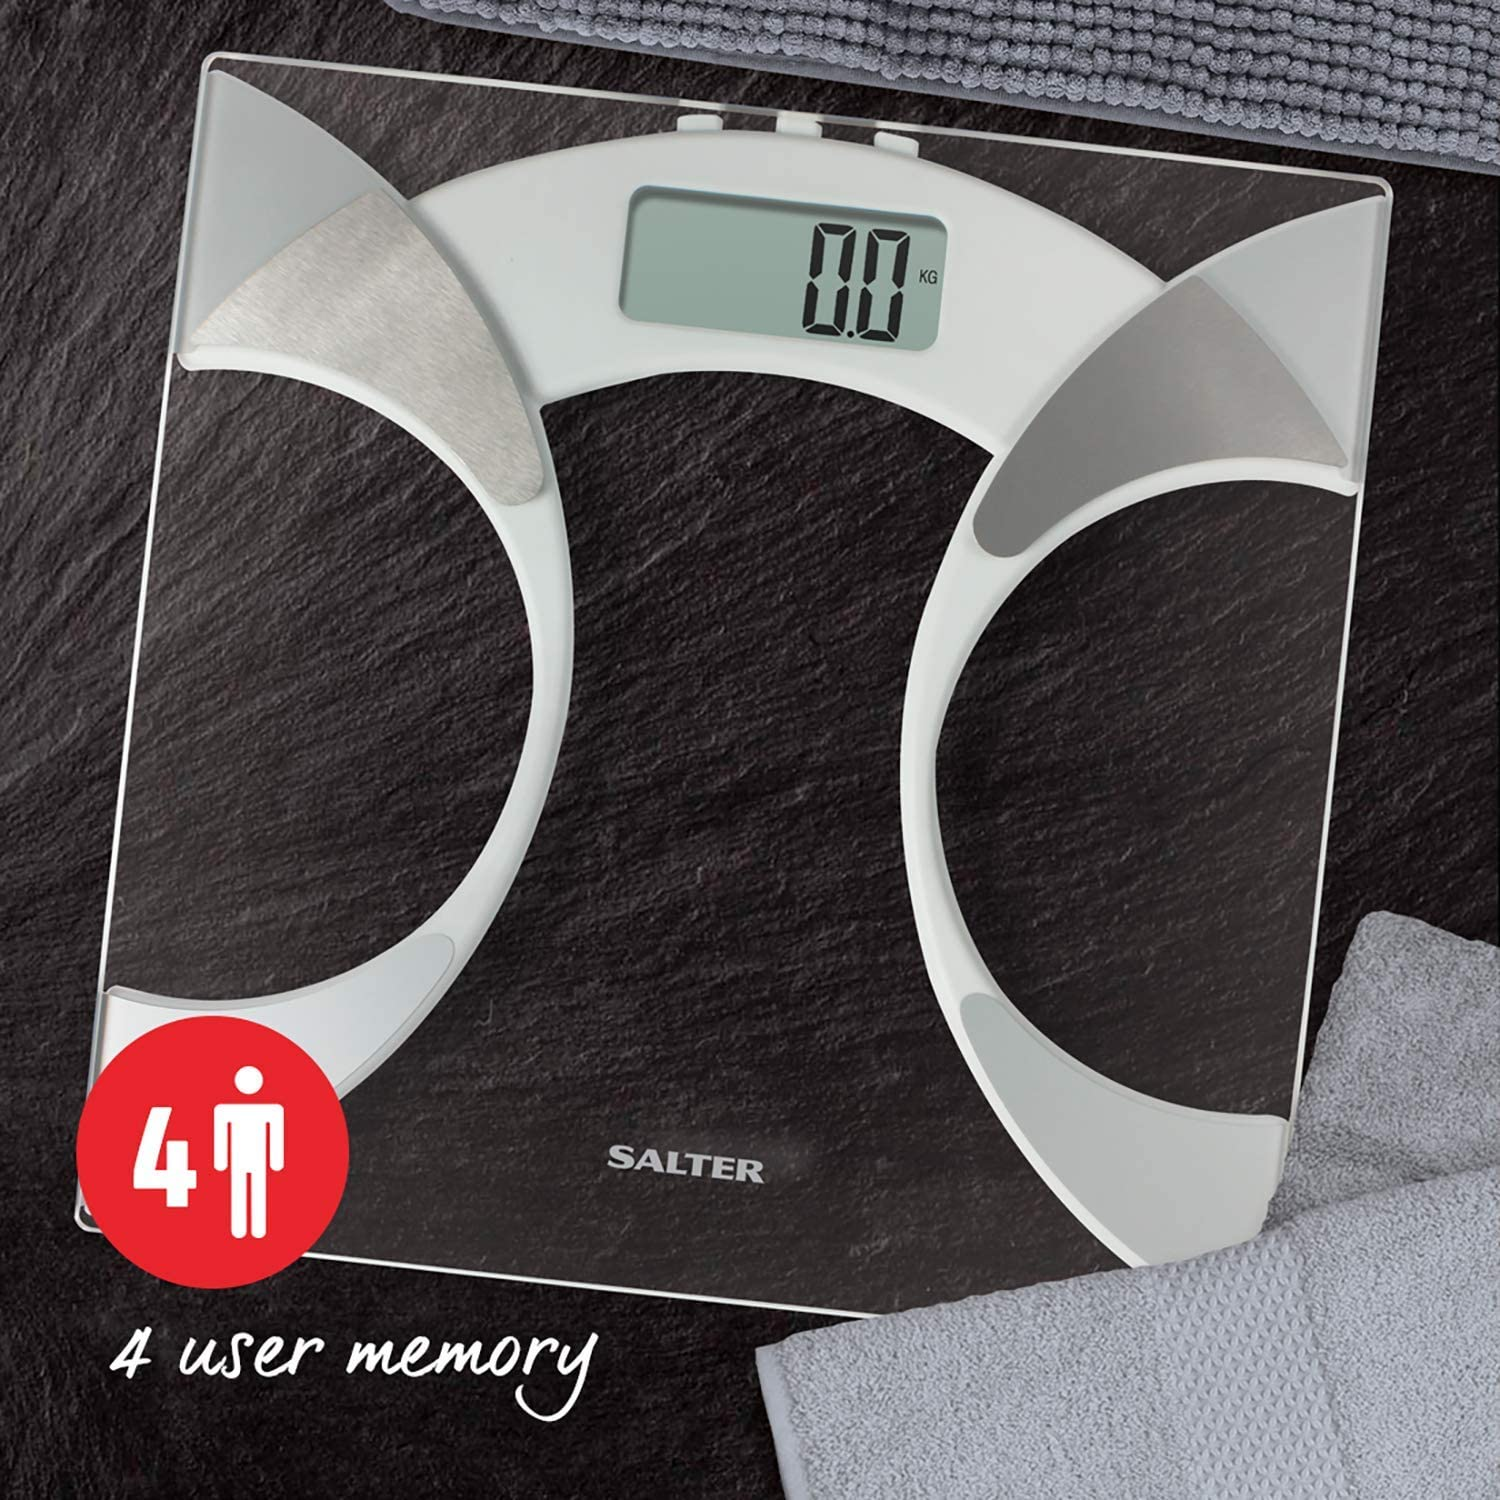 Salter Ultra Slim Analyser Bathroom Scales, Measure Weight ...